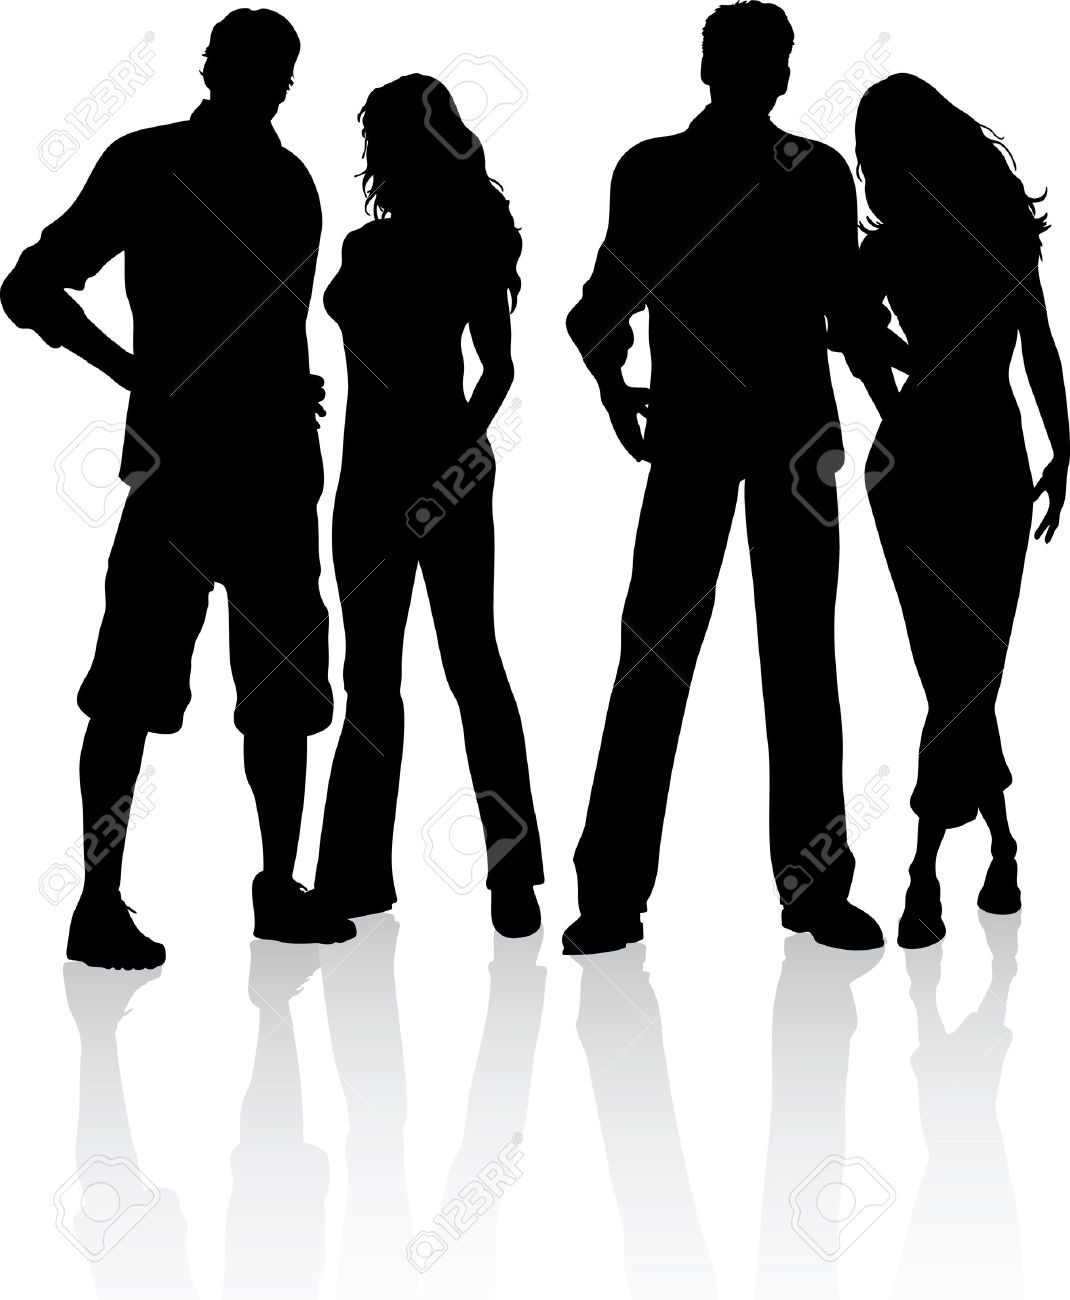 Silhouette Of A Group Of Friends Royalty Free Cliparts, Vectors.